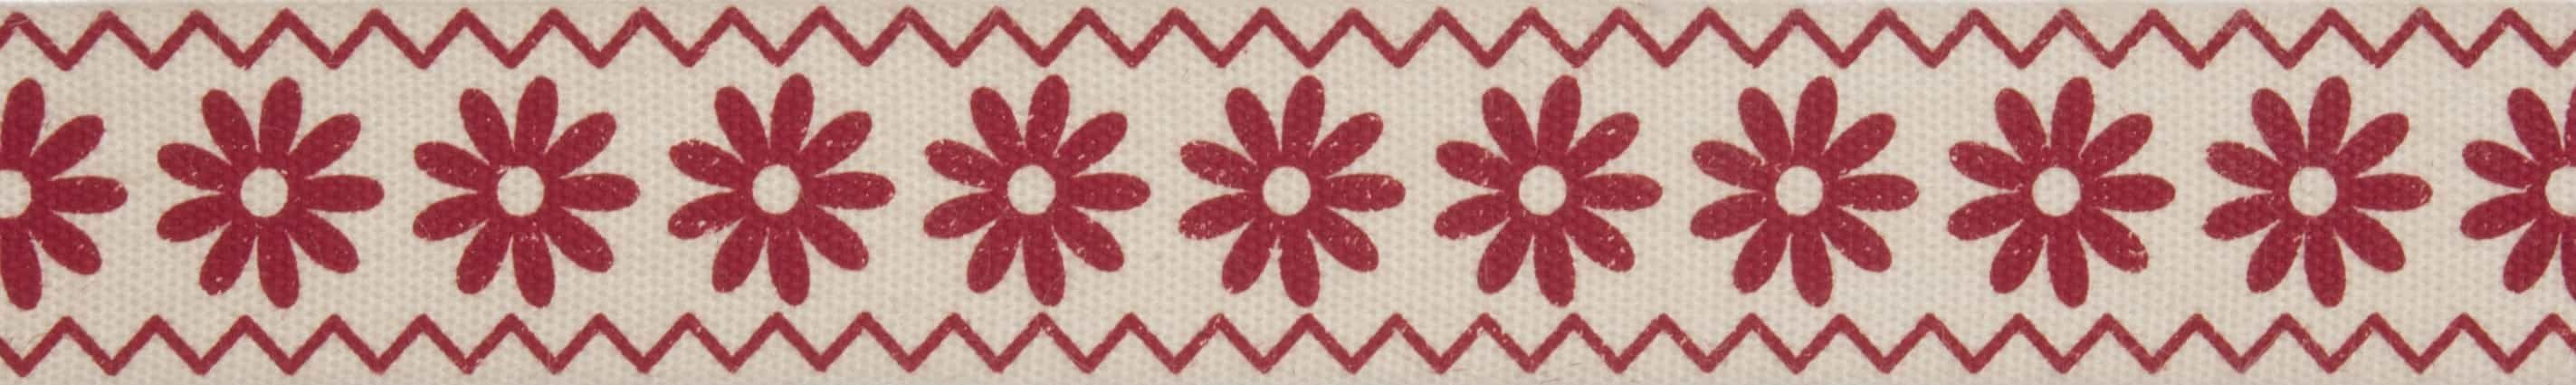 15mm Red Flowers Cotton Ribbon 5m Reel